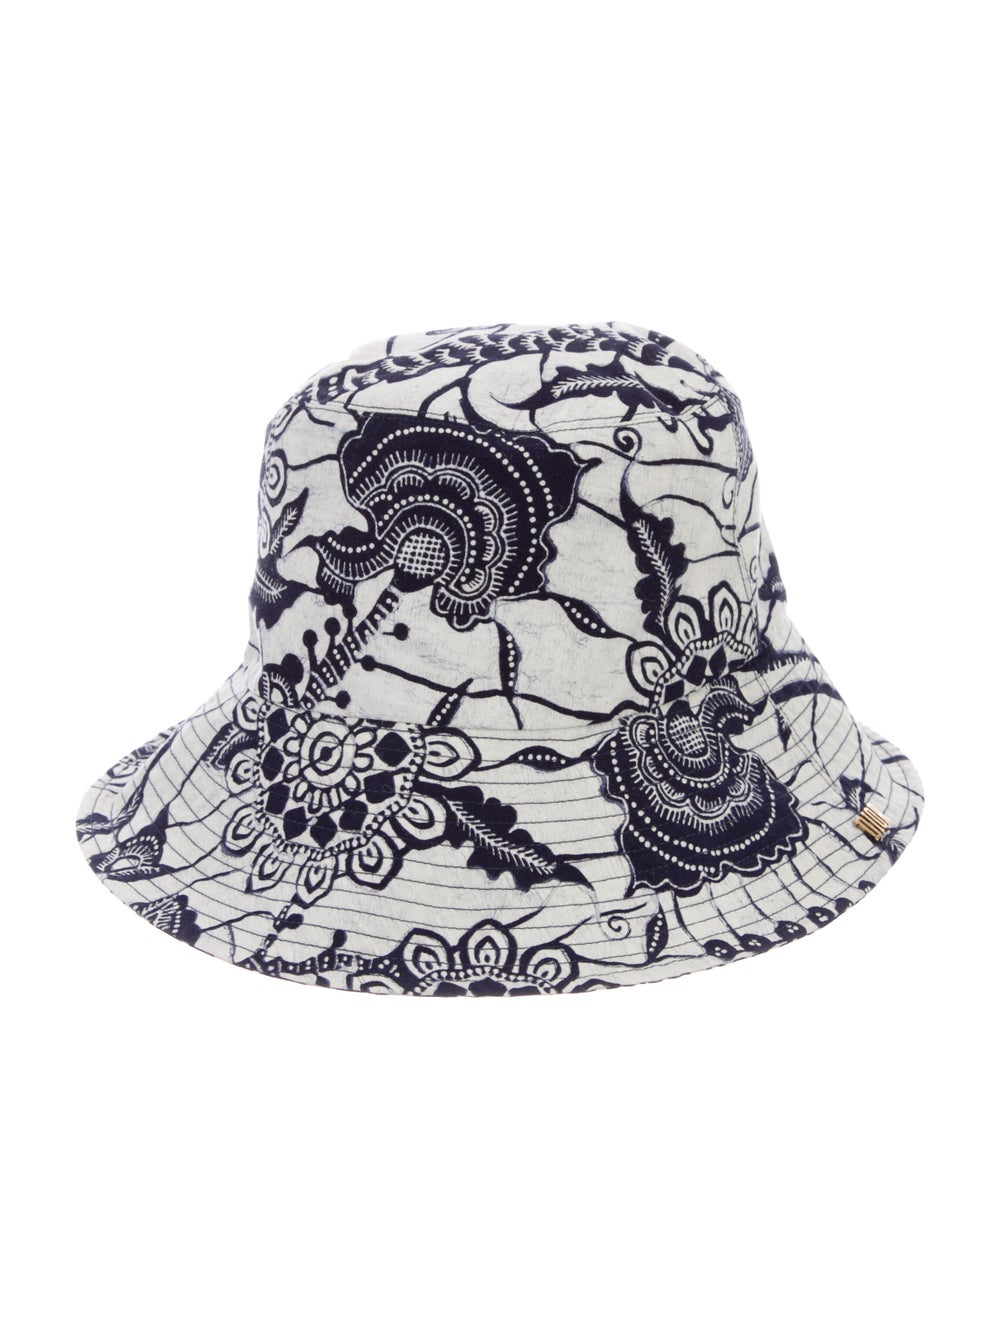 Christian Dior Printed Canvas Bucket Hat Navy - image 1